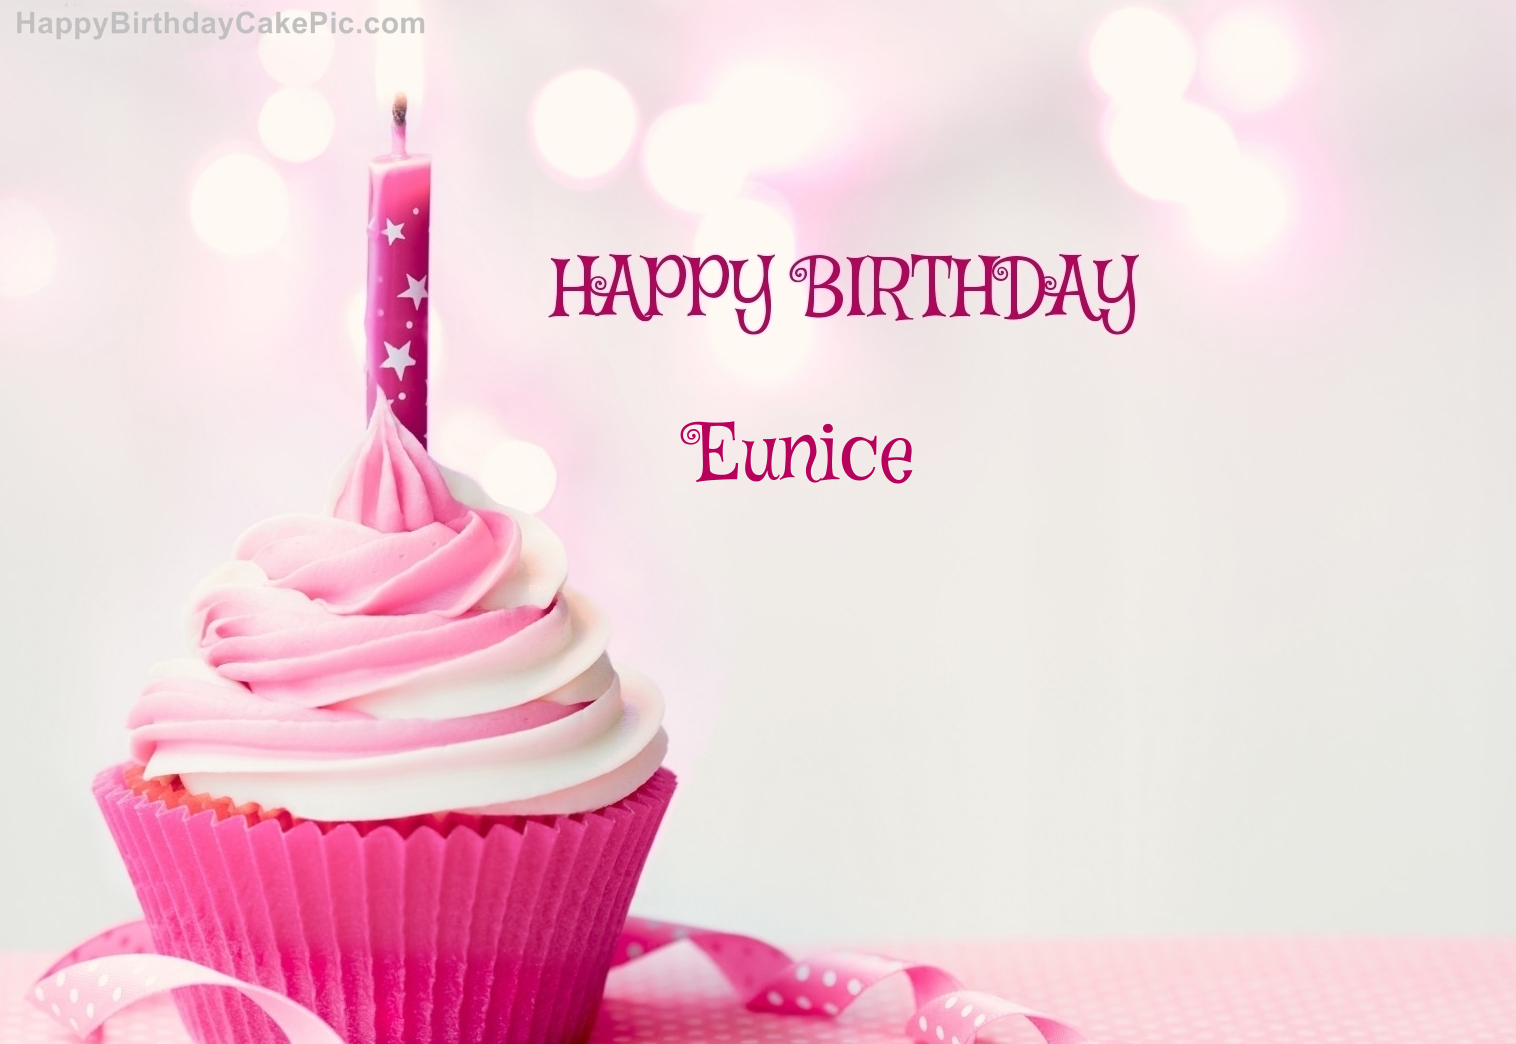 Happy Birthday Cupcake Candle Pink Cake For Eunice